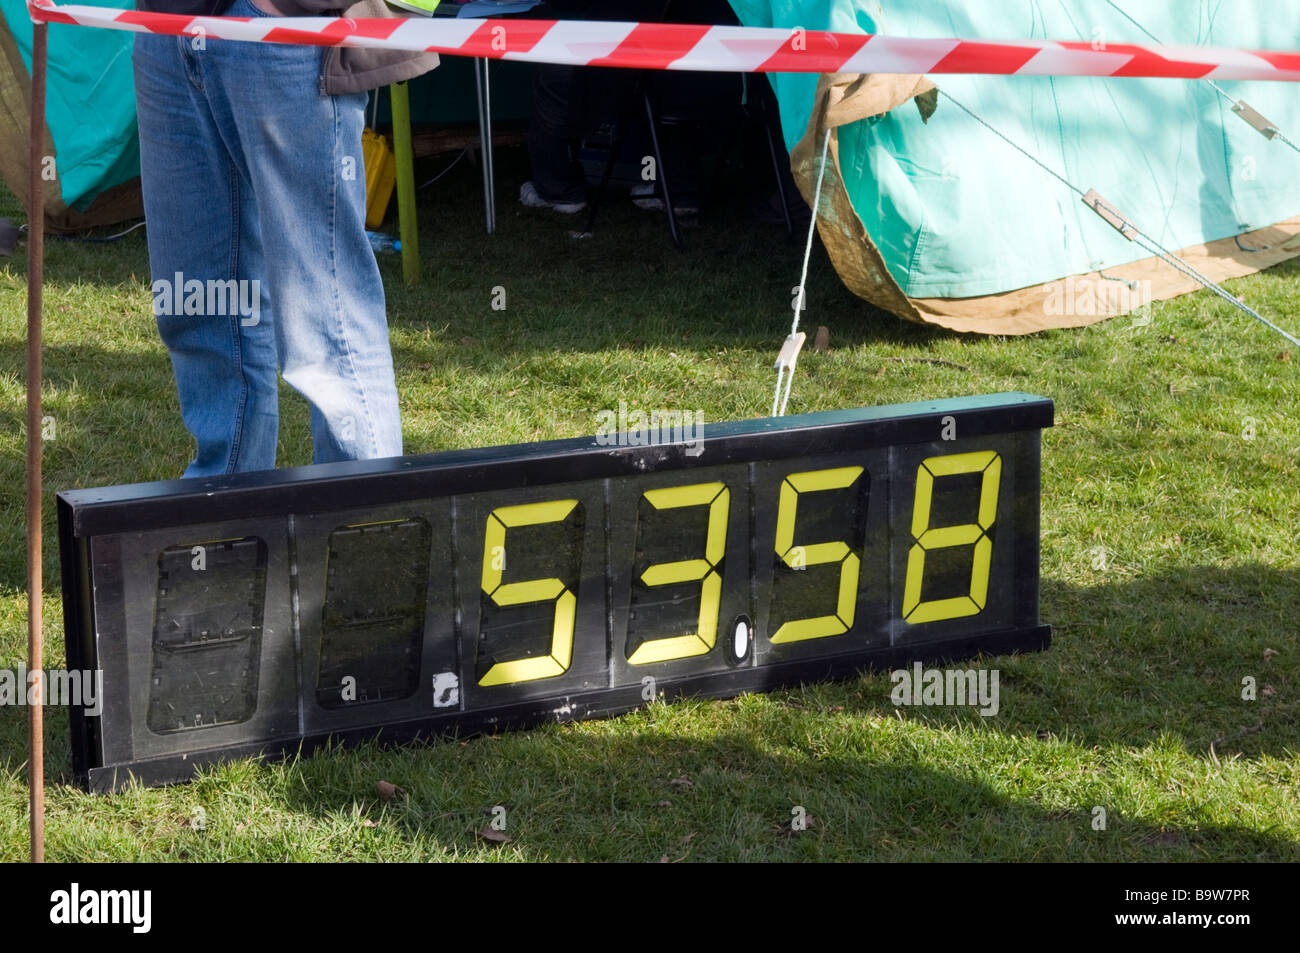 Electronic clock/timer for marathon runners at the finish line Derbyshire England - Stock Image